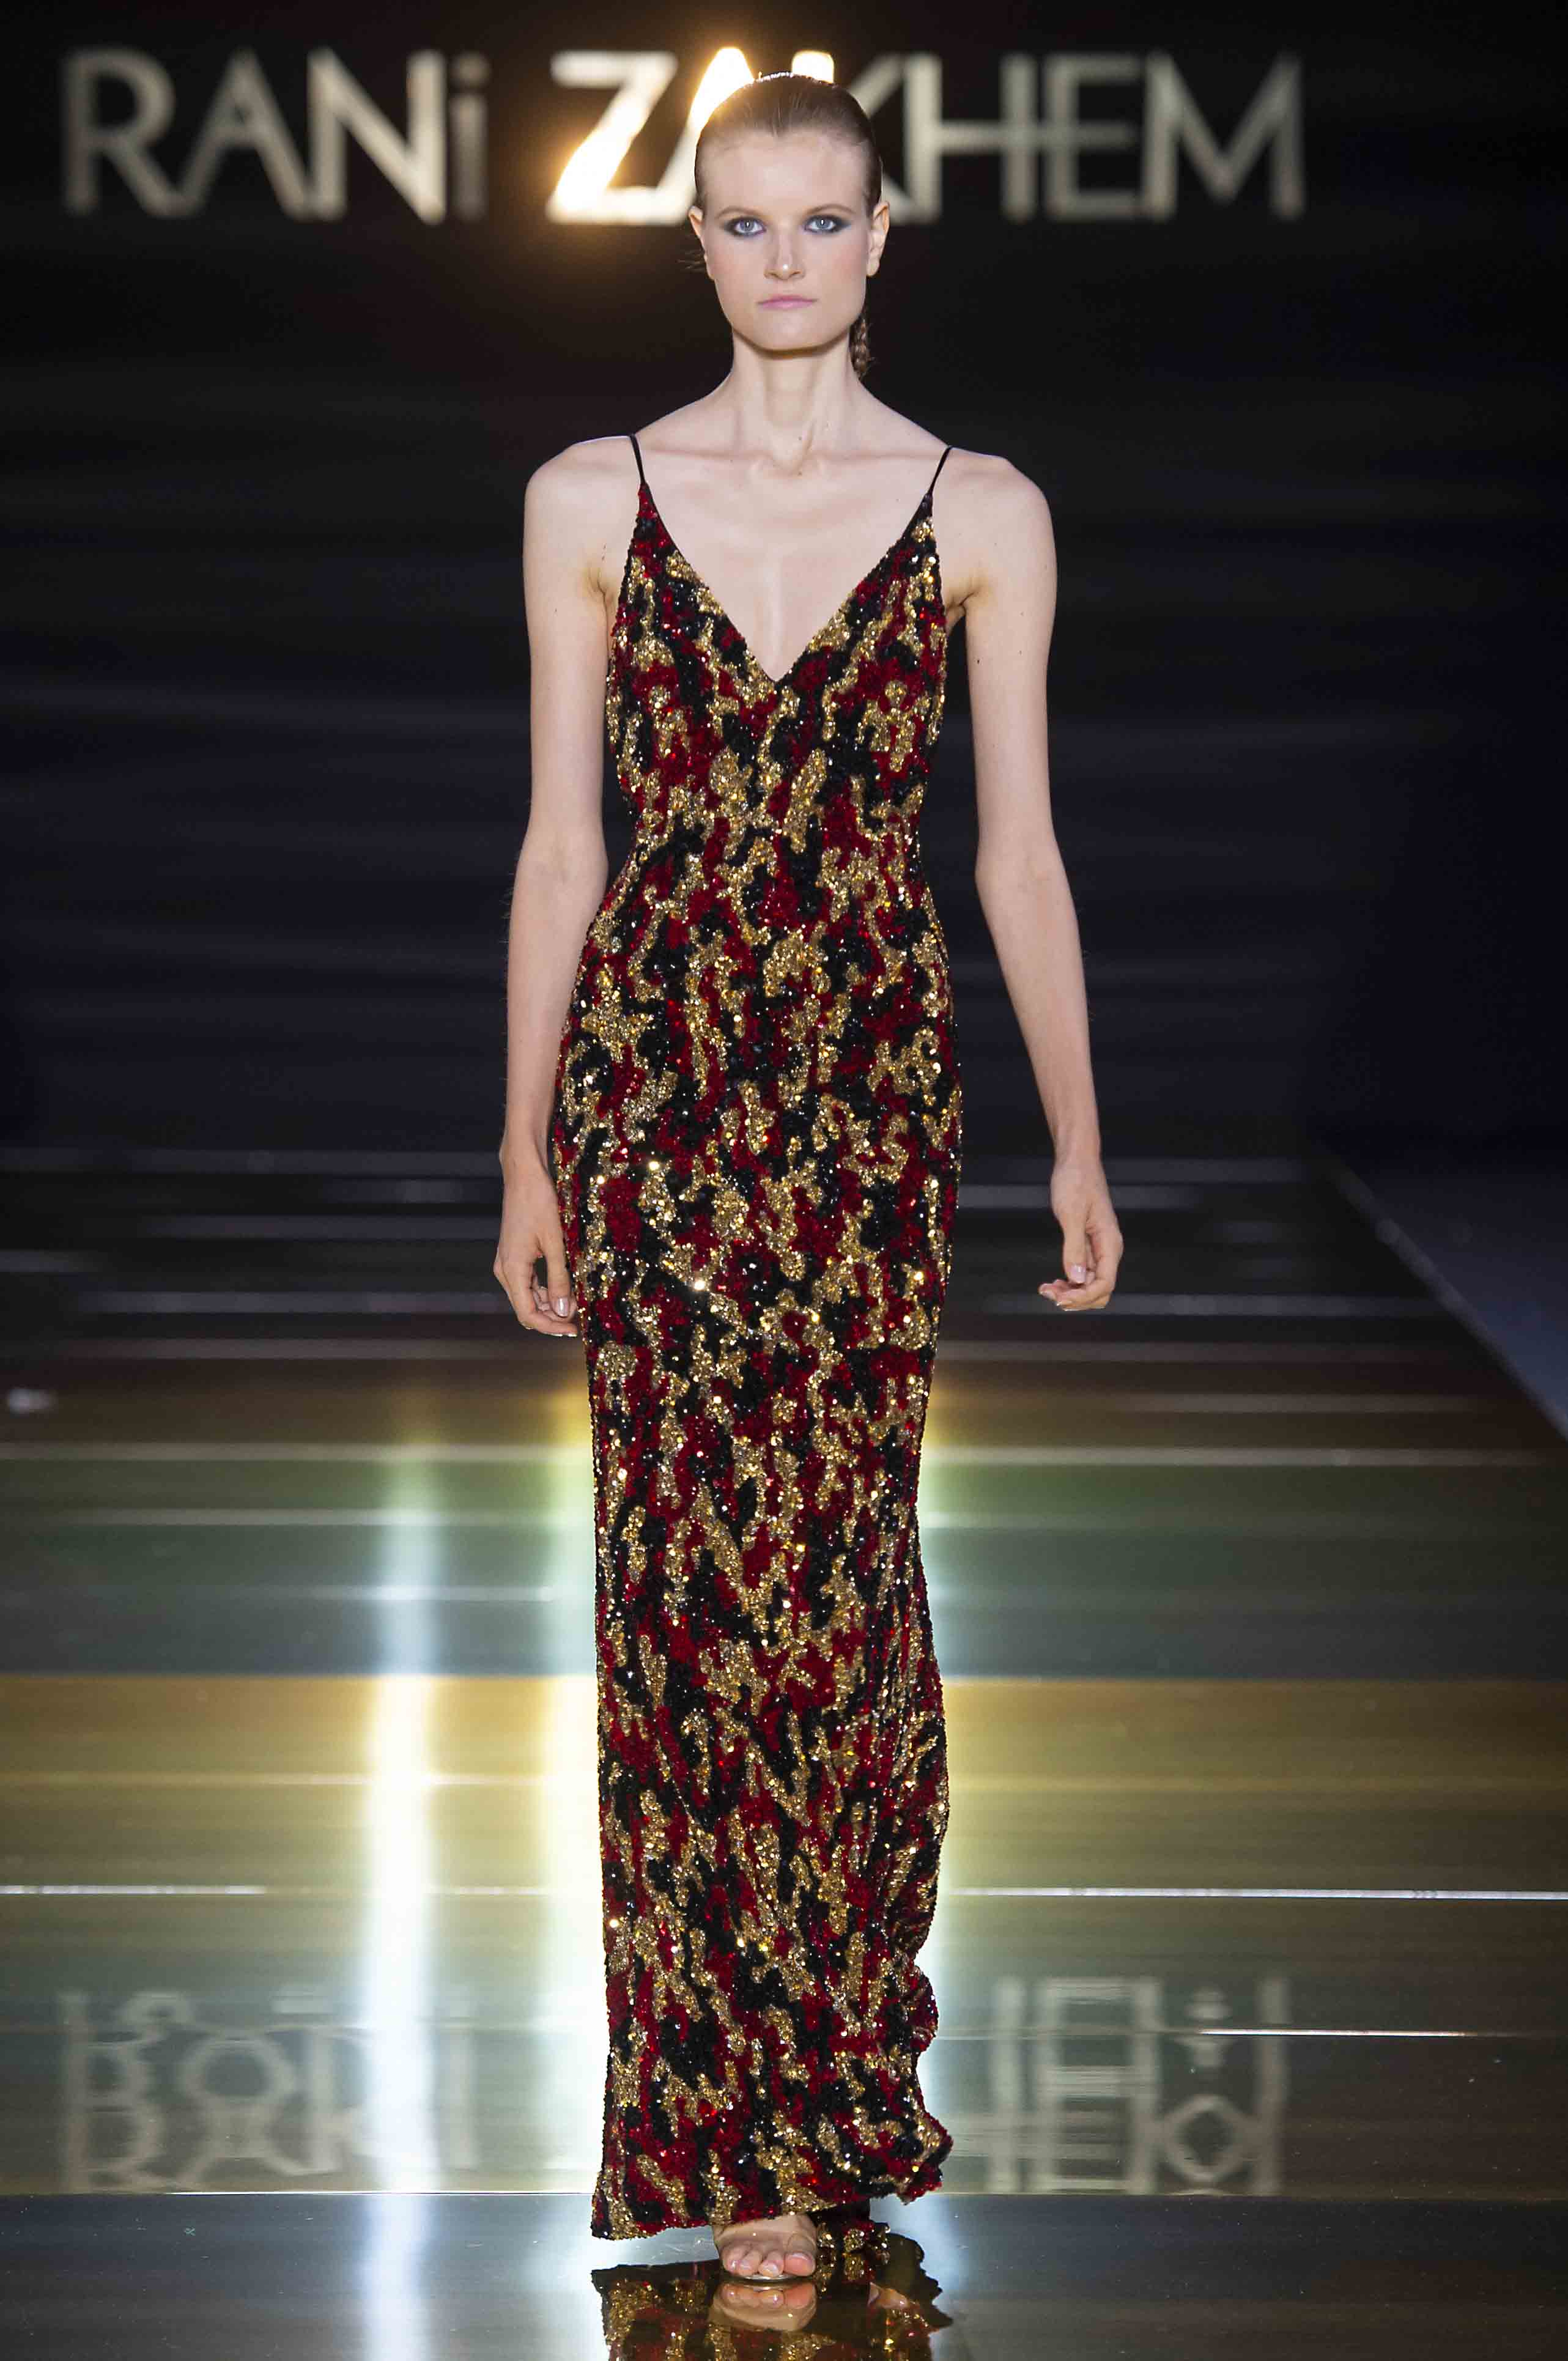 Rani zakhem couture collection automne hiver fall winter 2018 2019 pfw © imaxtree (24)